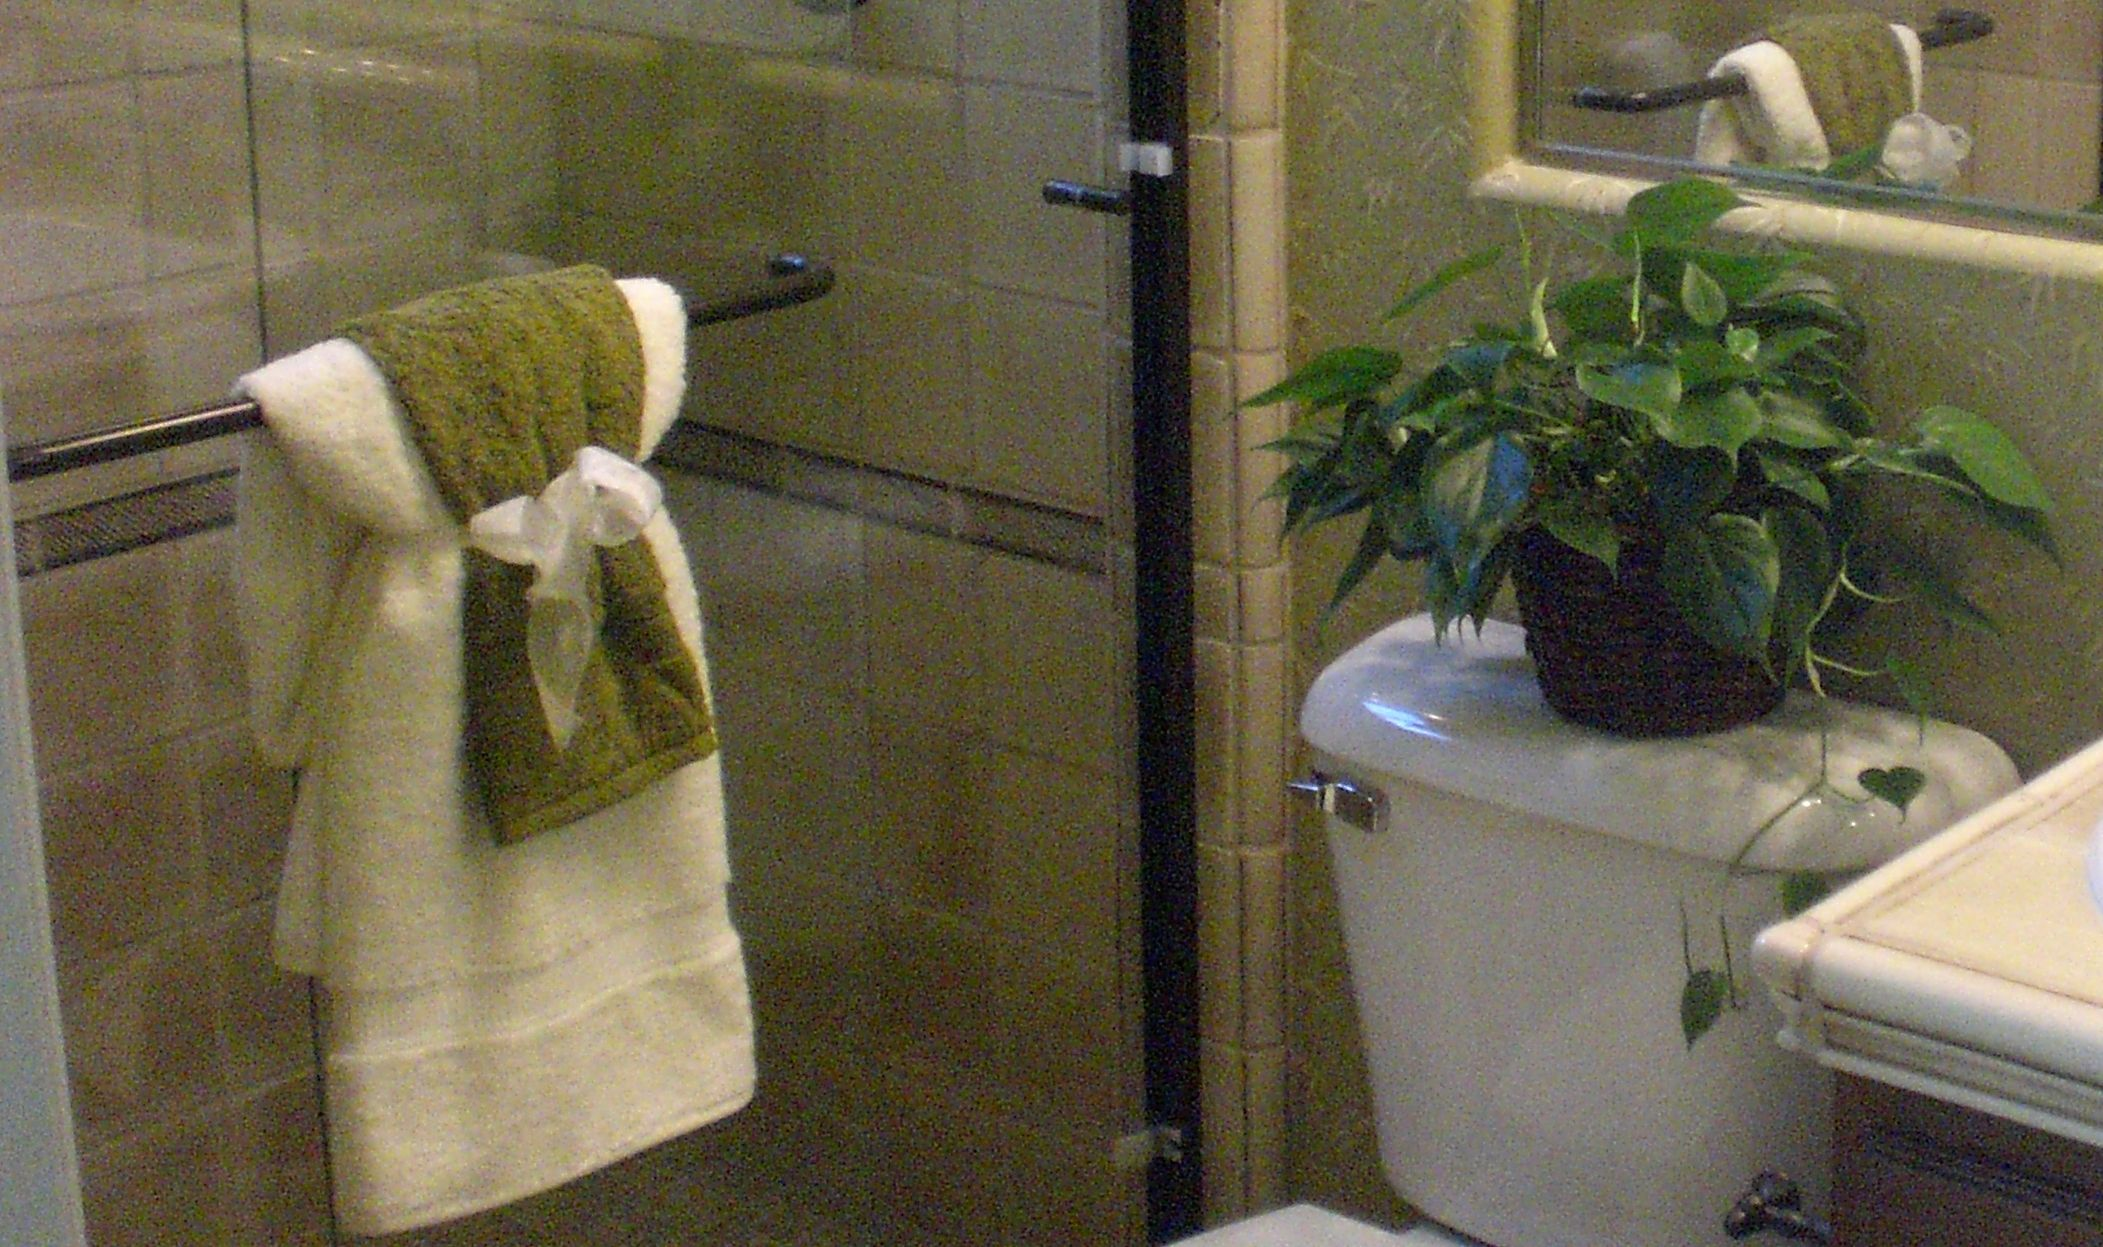 Towel Decorations Everyday Items Towels And Bathroom - Bathroom hand towels for small bathroom ideas